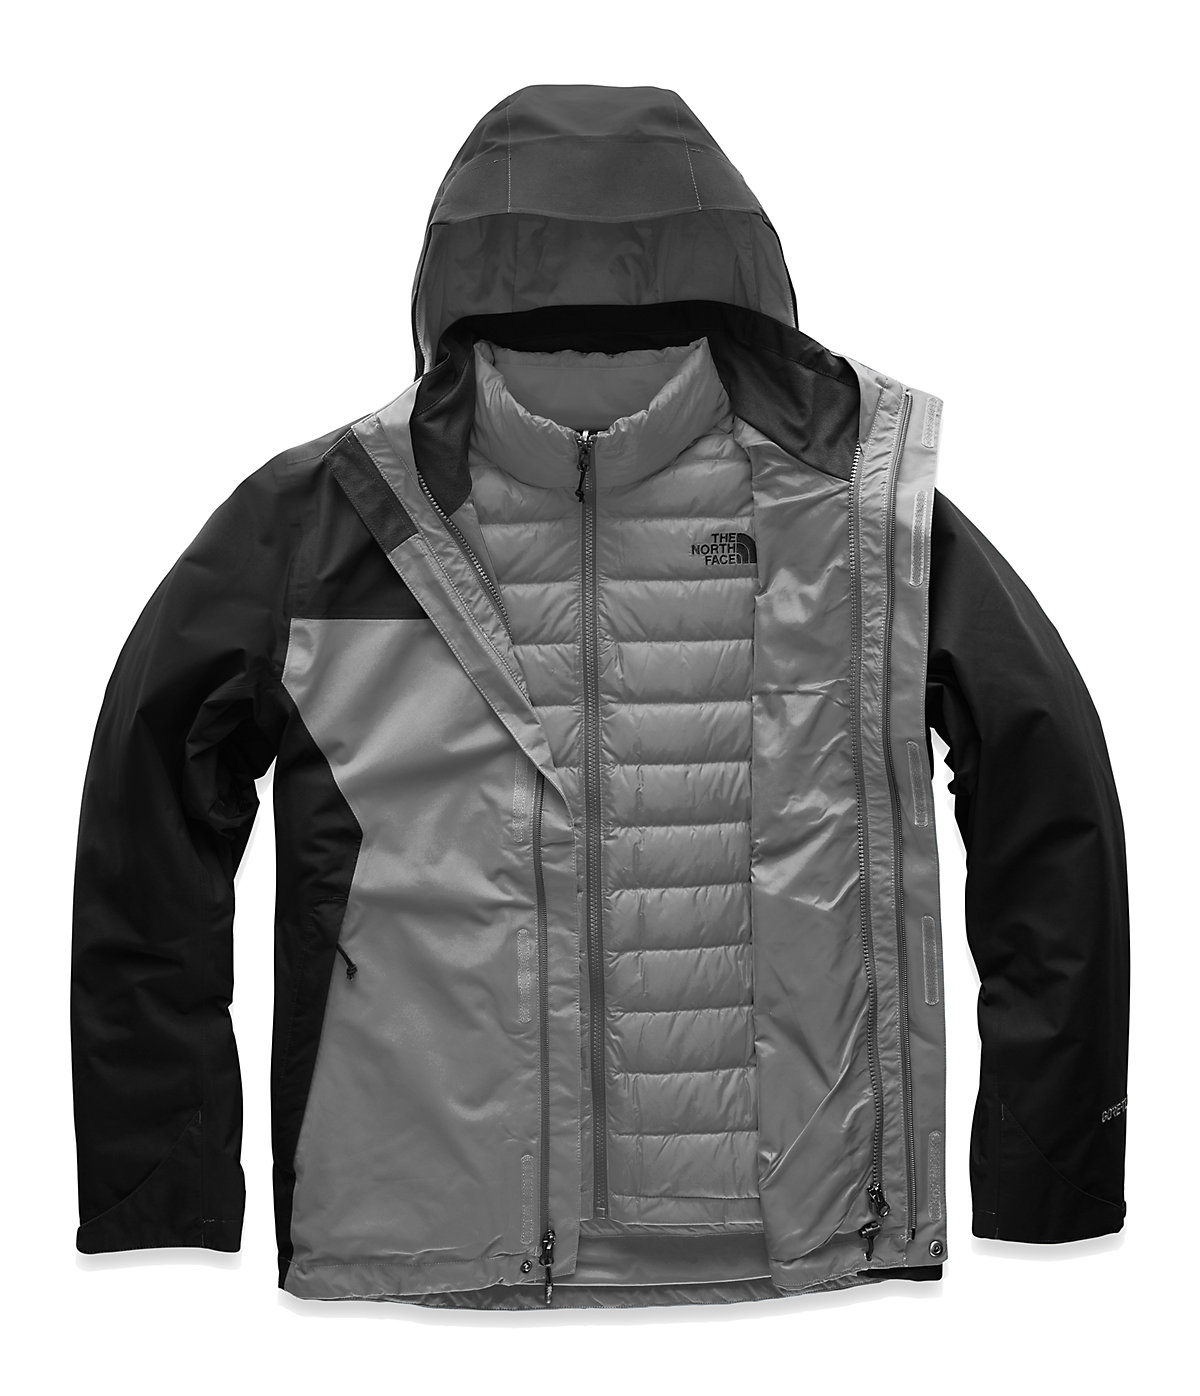 Men S Mountain Light Triclimate Jacket The North Face Triclimate Jacket Mens Jackets Jackets [ 1396 x 1200 Pixel ]